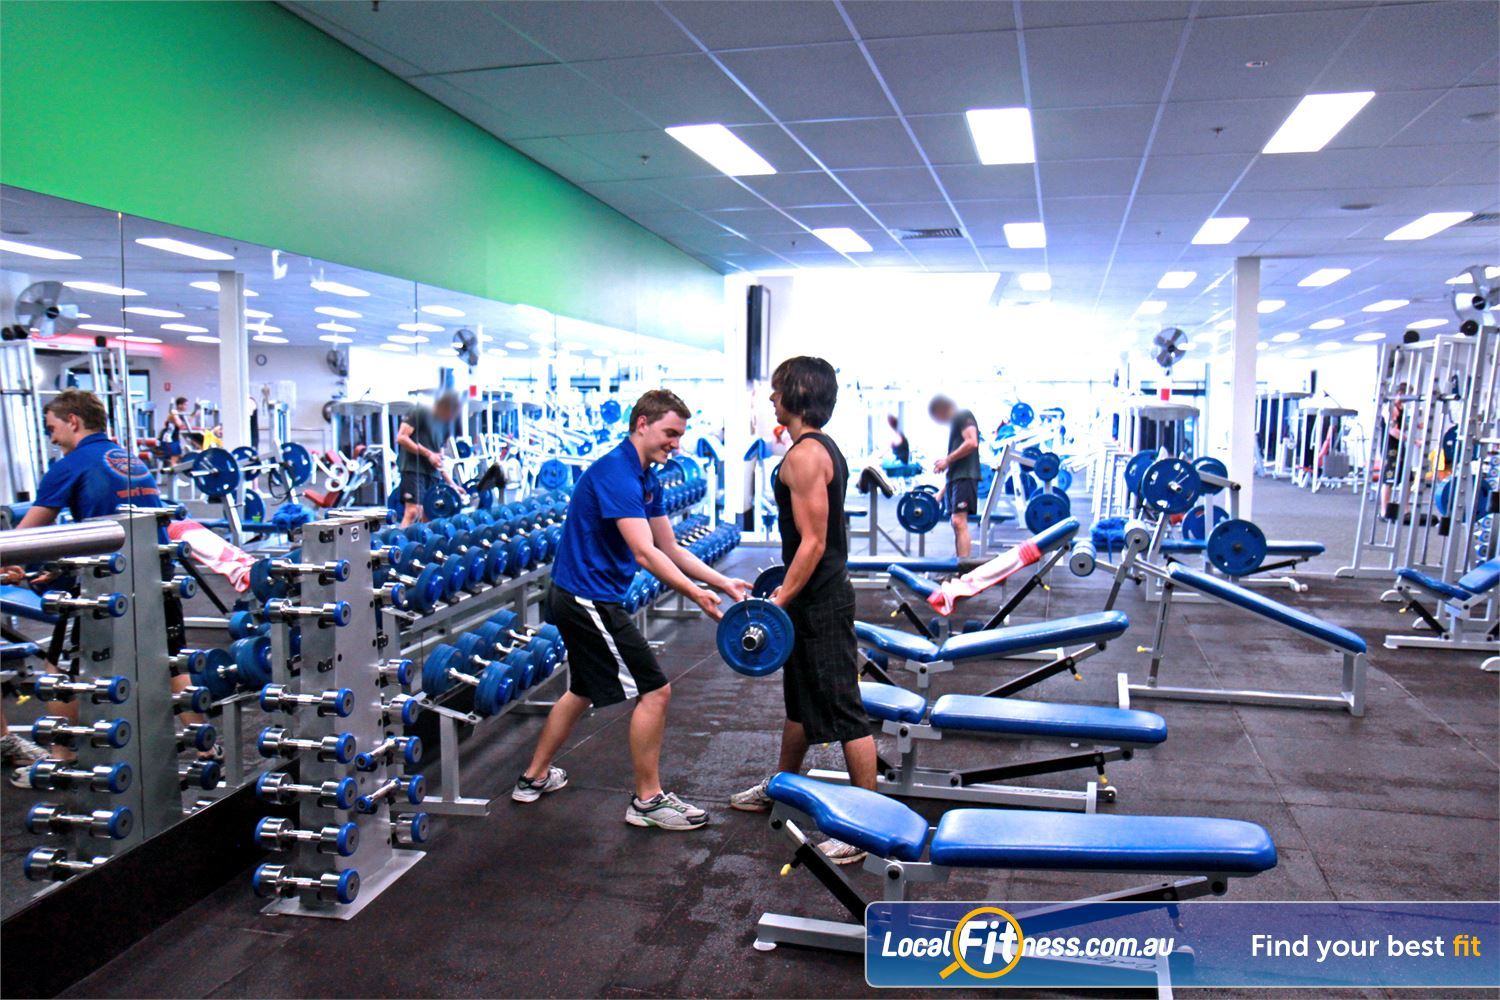 Goodlife Health Clubs Near Woodend Our Ipswich gym includes a comprehensive range of dumbbells and barbells.